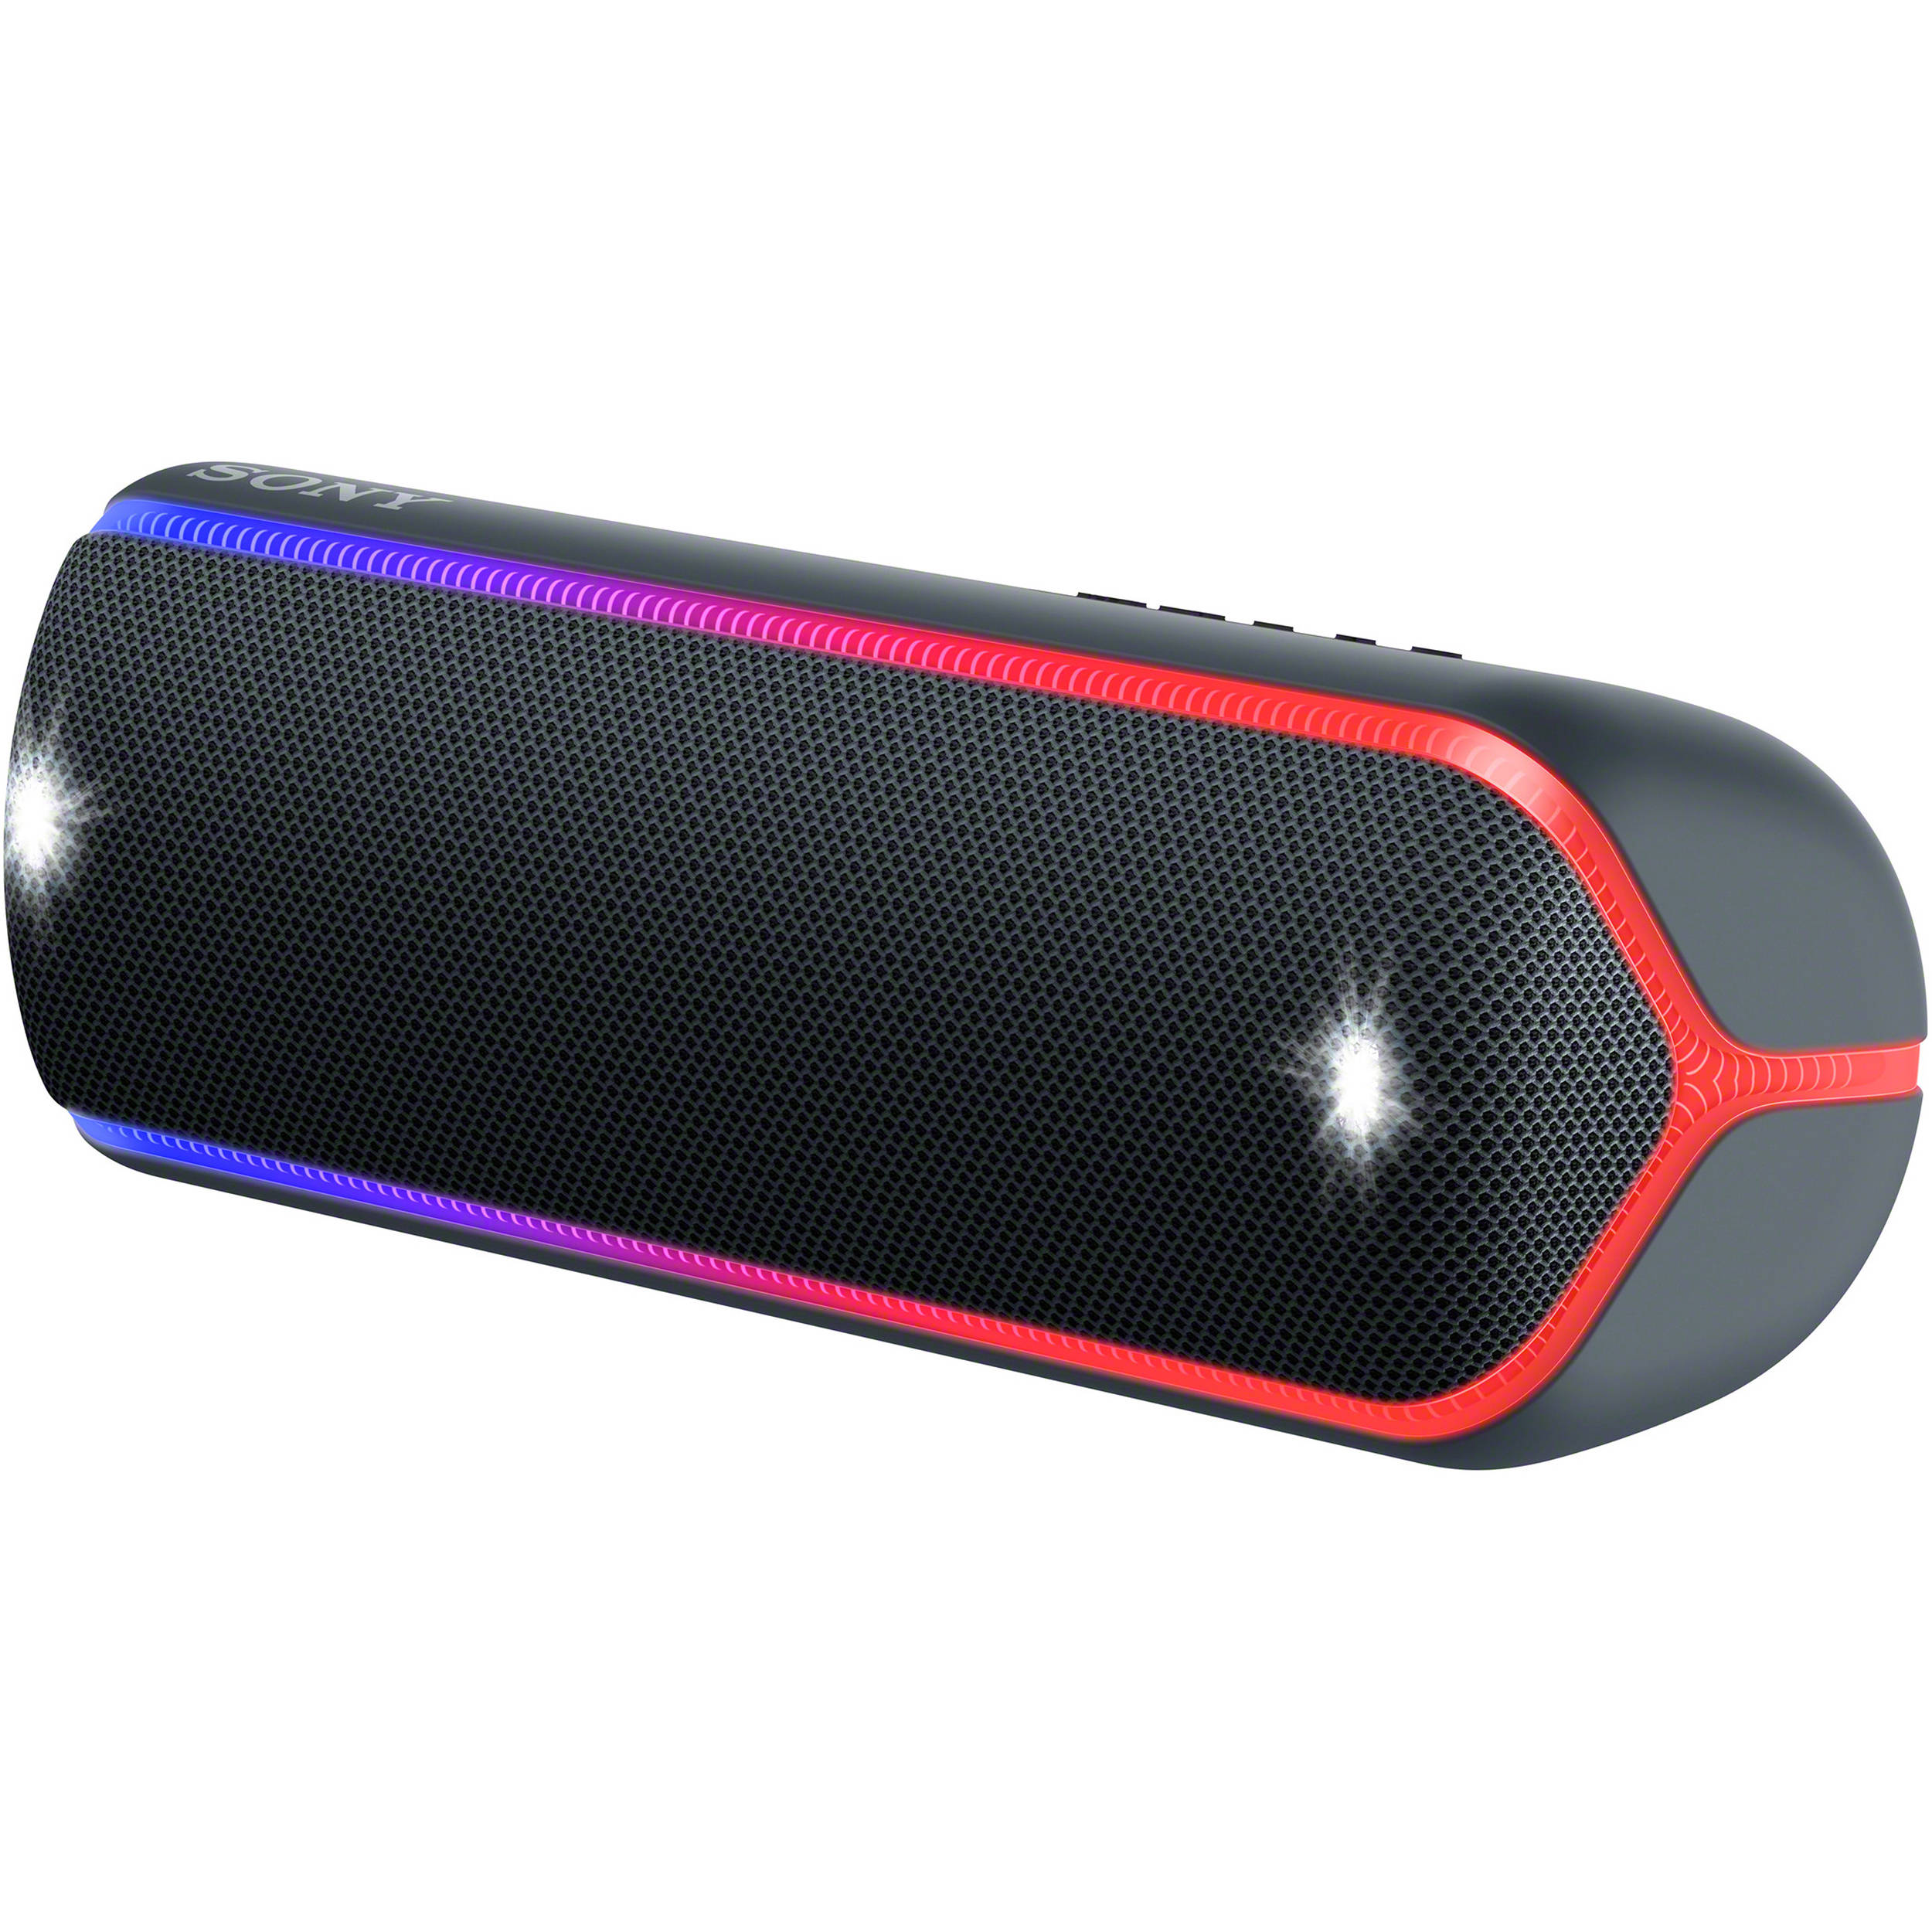 Sony SRS-XB32 EXTRA BASS Portable Bluetooth Speaker (Black)